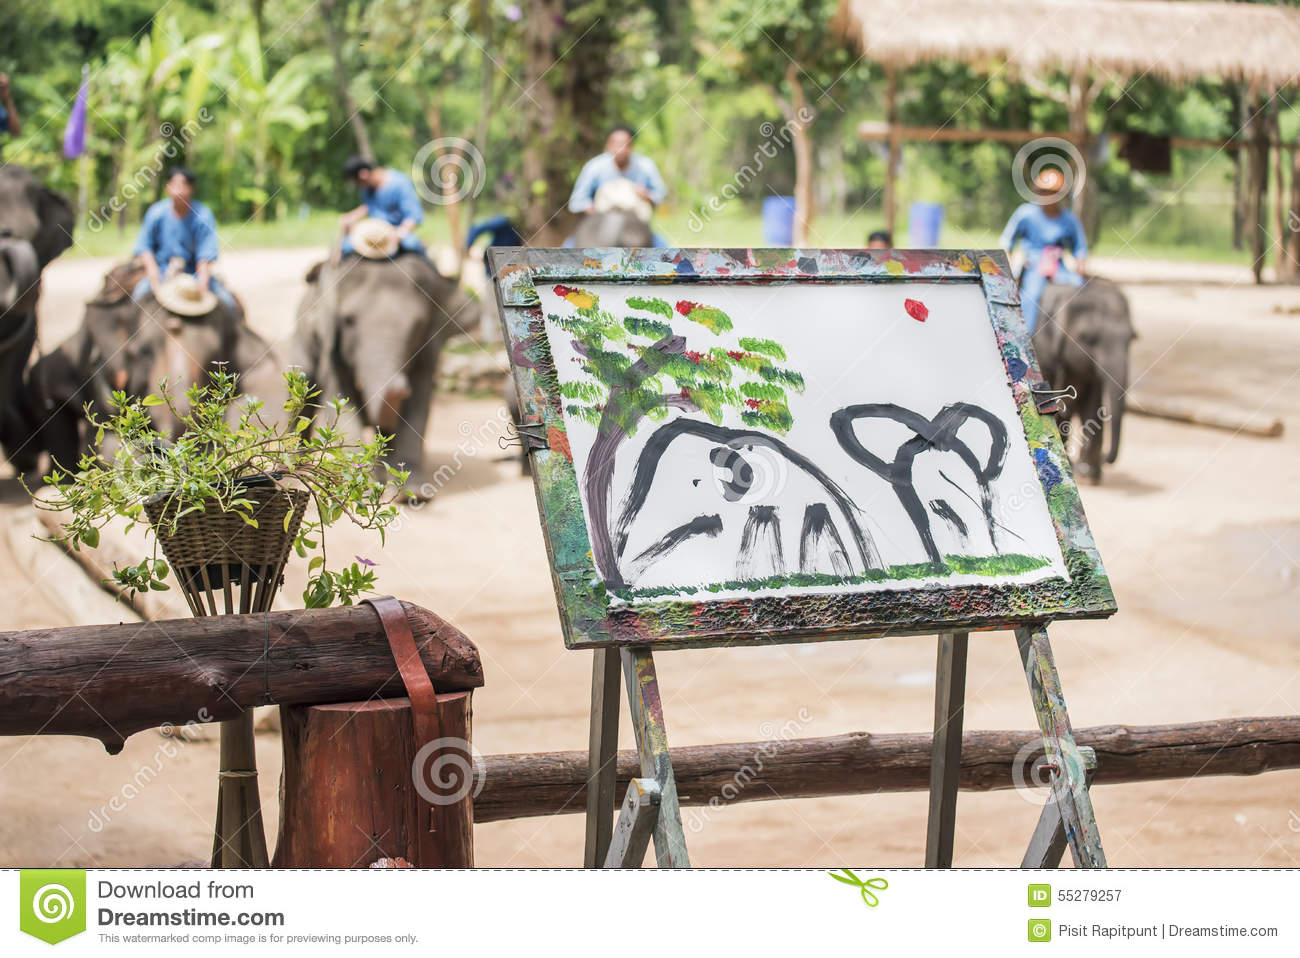 Mahout train elephant drawing a picture.